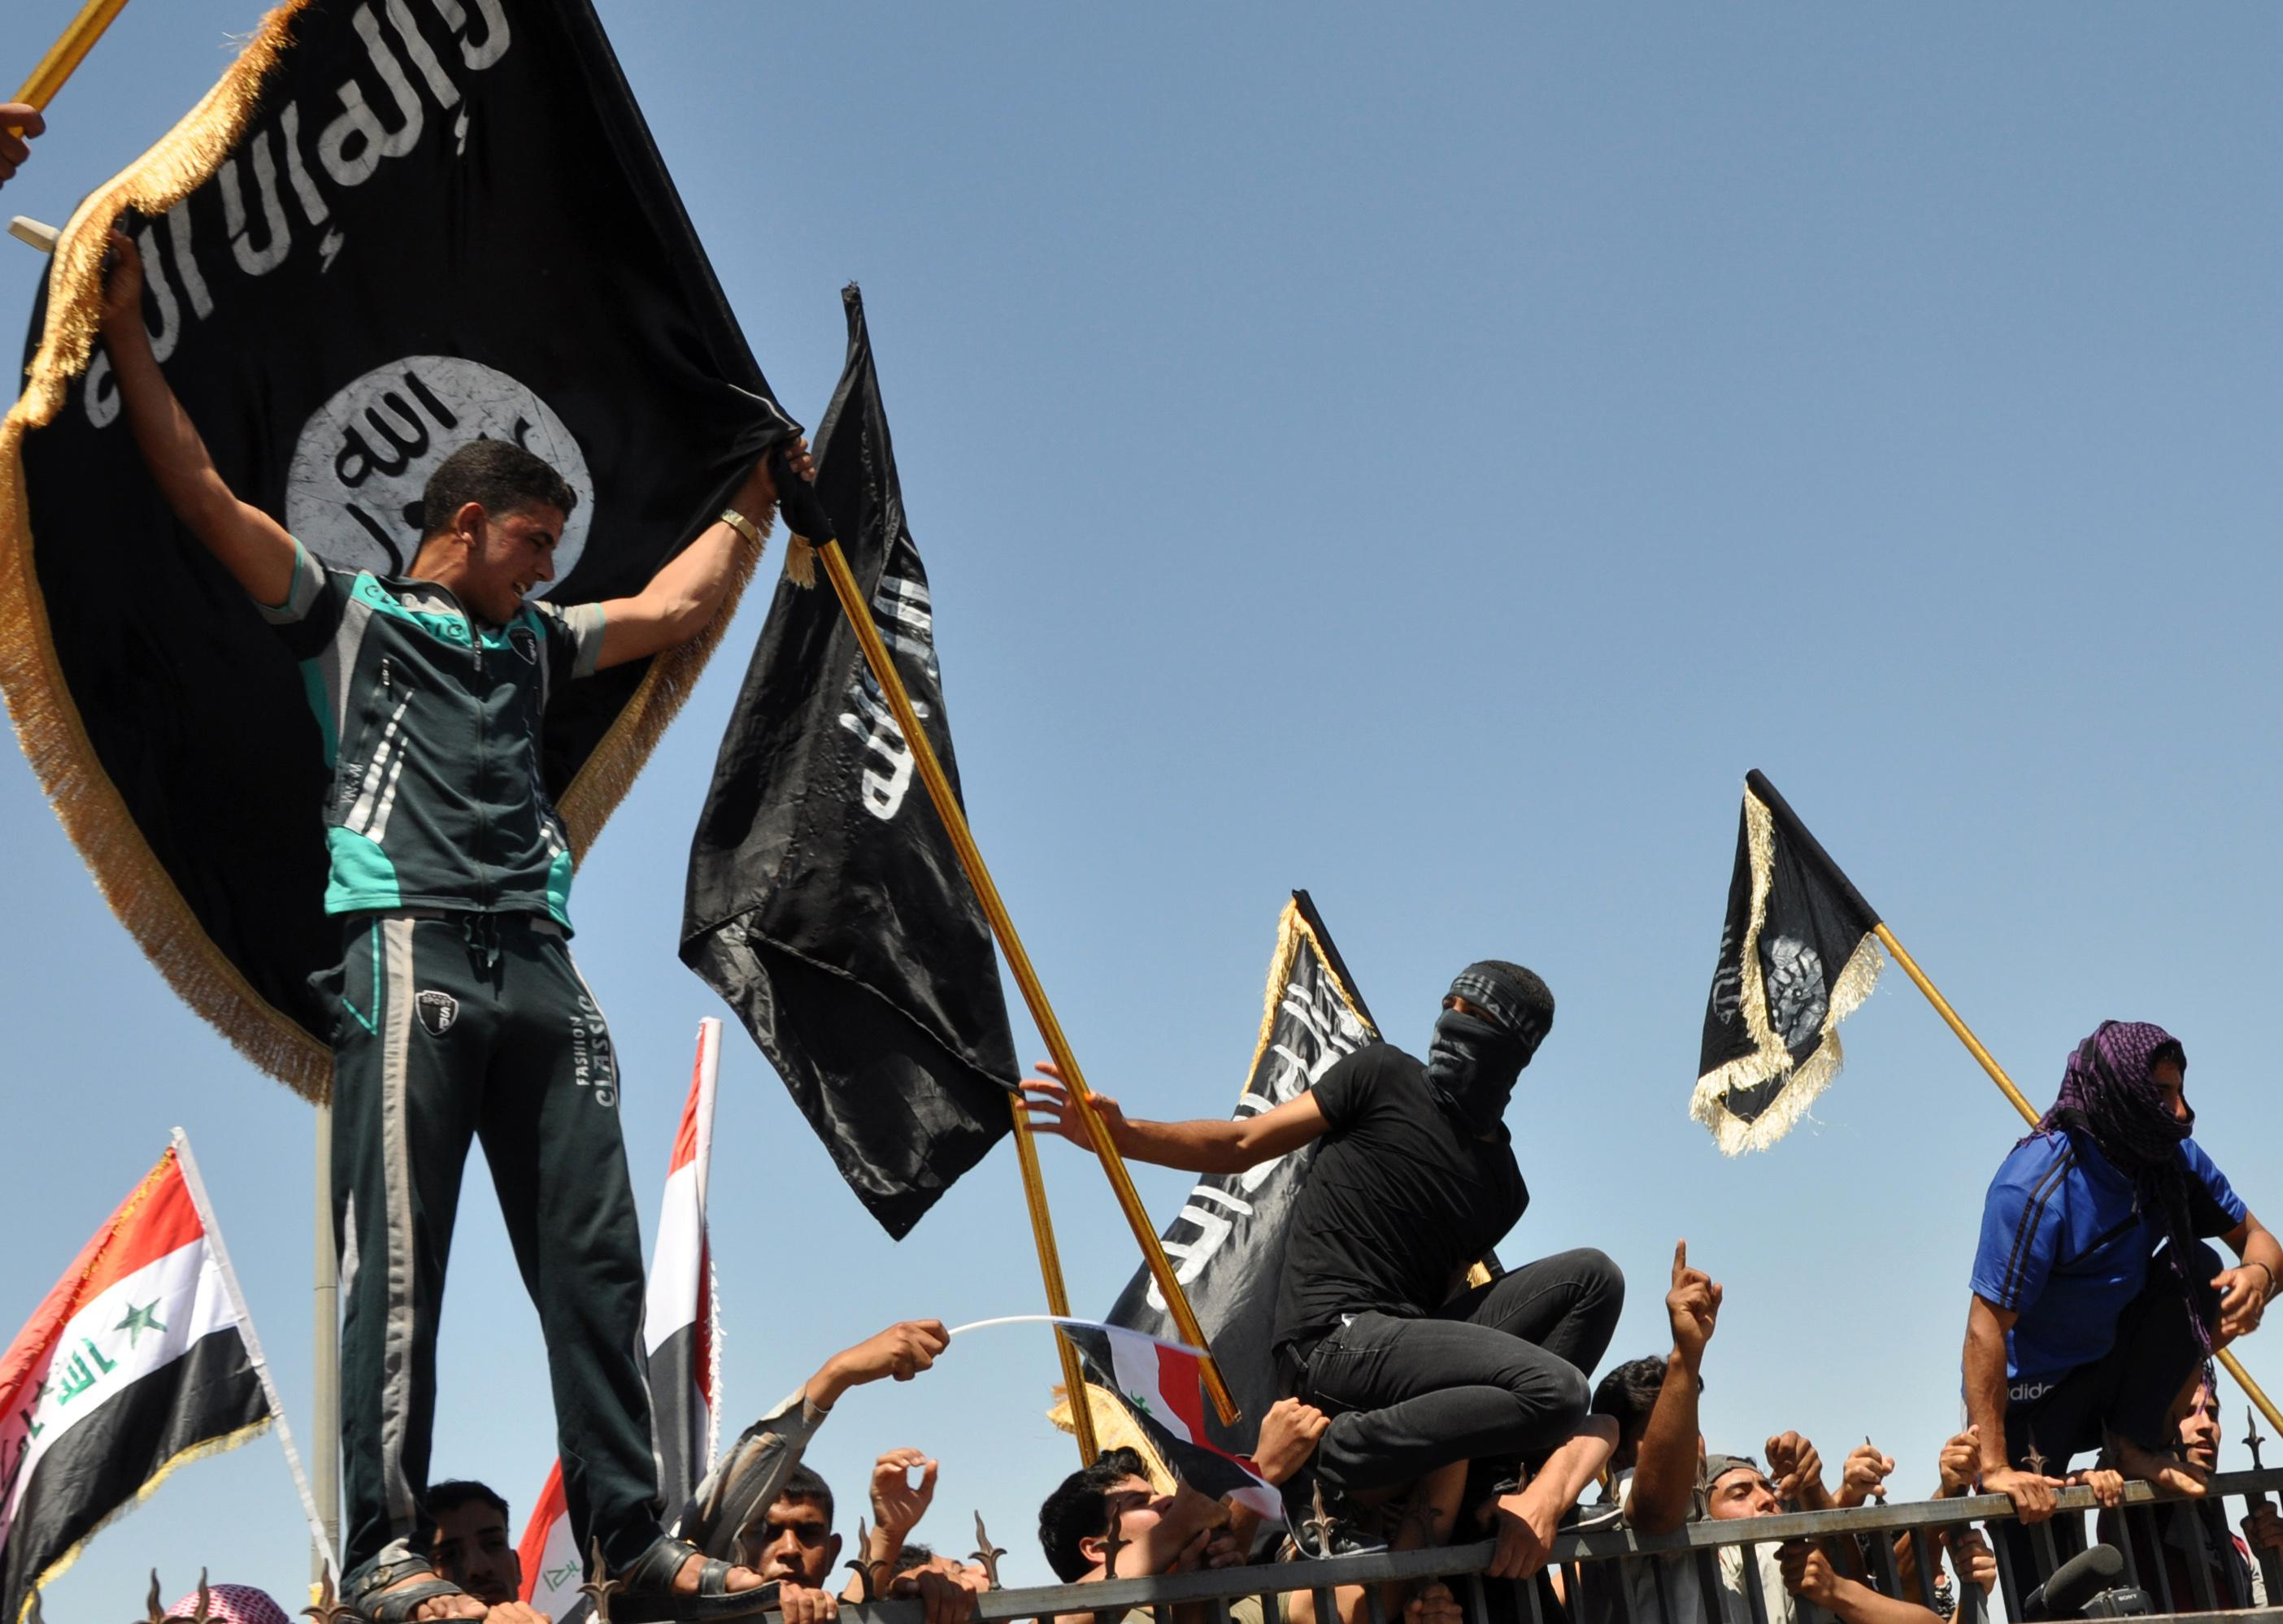 FILE - Masked Sunni protesters wave Islamist flags while others chant slogans at an anti-government rally in Fallujah, Iraq, Friday, April 26, 2013. The leader of al-Qaida's Iraq arm, Abu Bakr al-Baghdadi, defiantly rejected an order from the terror network's global command to scrap a merger with the organization's Syria affiliate, according to a message purporting to be from Al-Baghdadi that was posted online Saturday, June 15, 2013. (AP Photo/Bilal Fawzi, File)